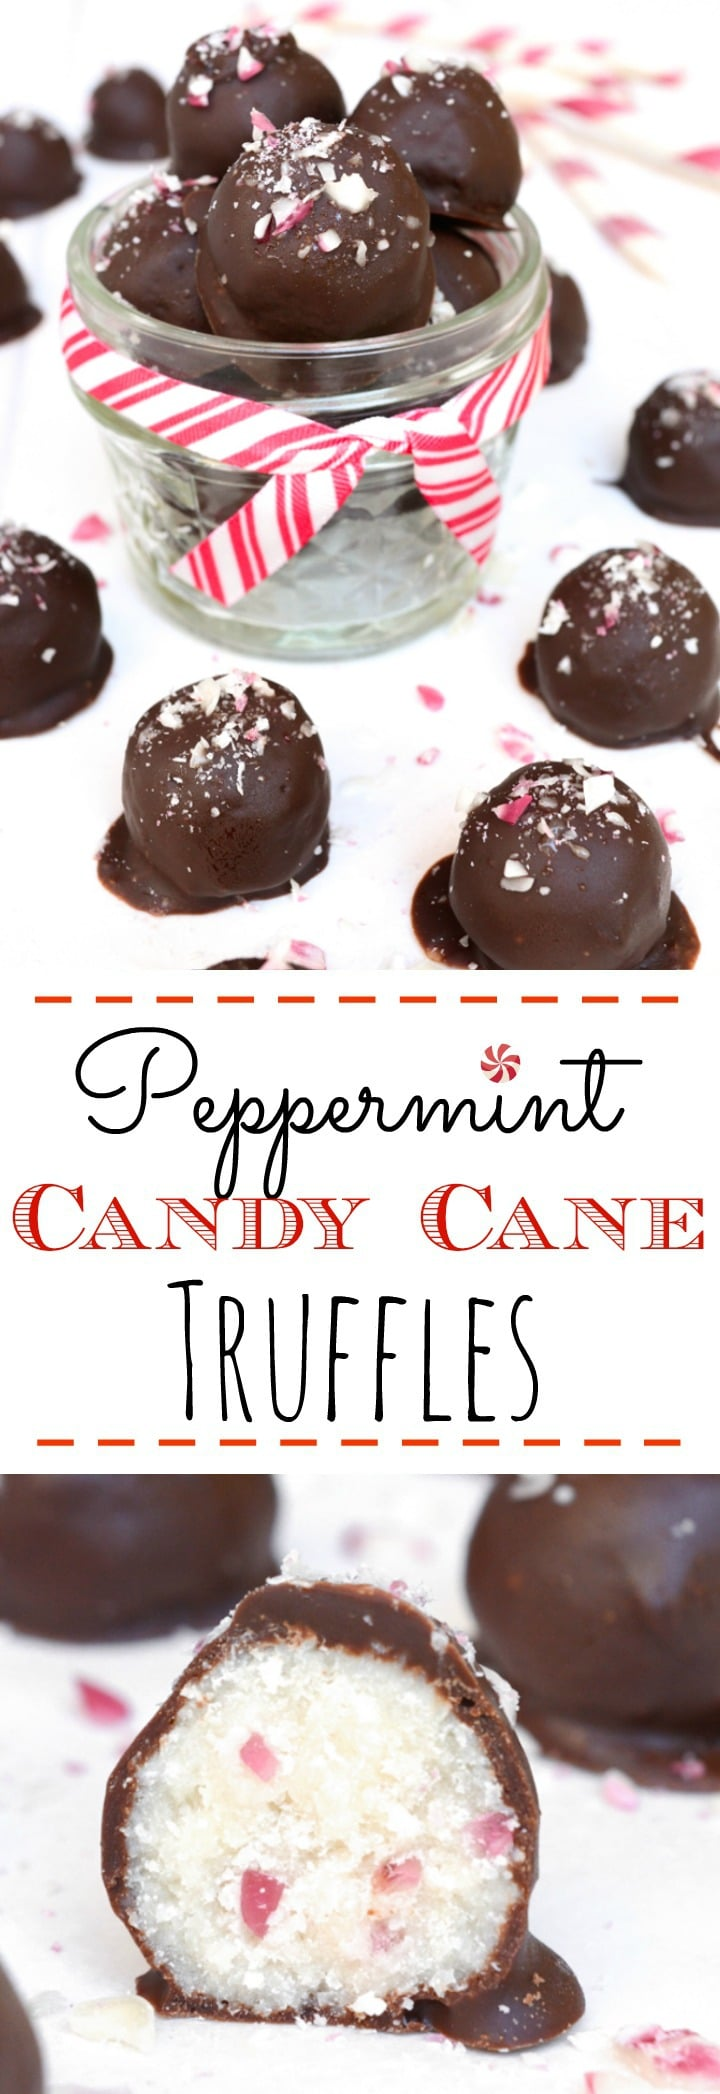 Peppermint Candy Cane Truffles are loaded with anirresistible candy cane crunch. They're a great allergy-friendly holiday treat or a perfect homemade gift. Vegan, gluten-free, nut-free andonly 6 simple ingredients to make! #vegan #holidaytruffle #vegantruffle #choclate #peppermint #candycane